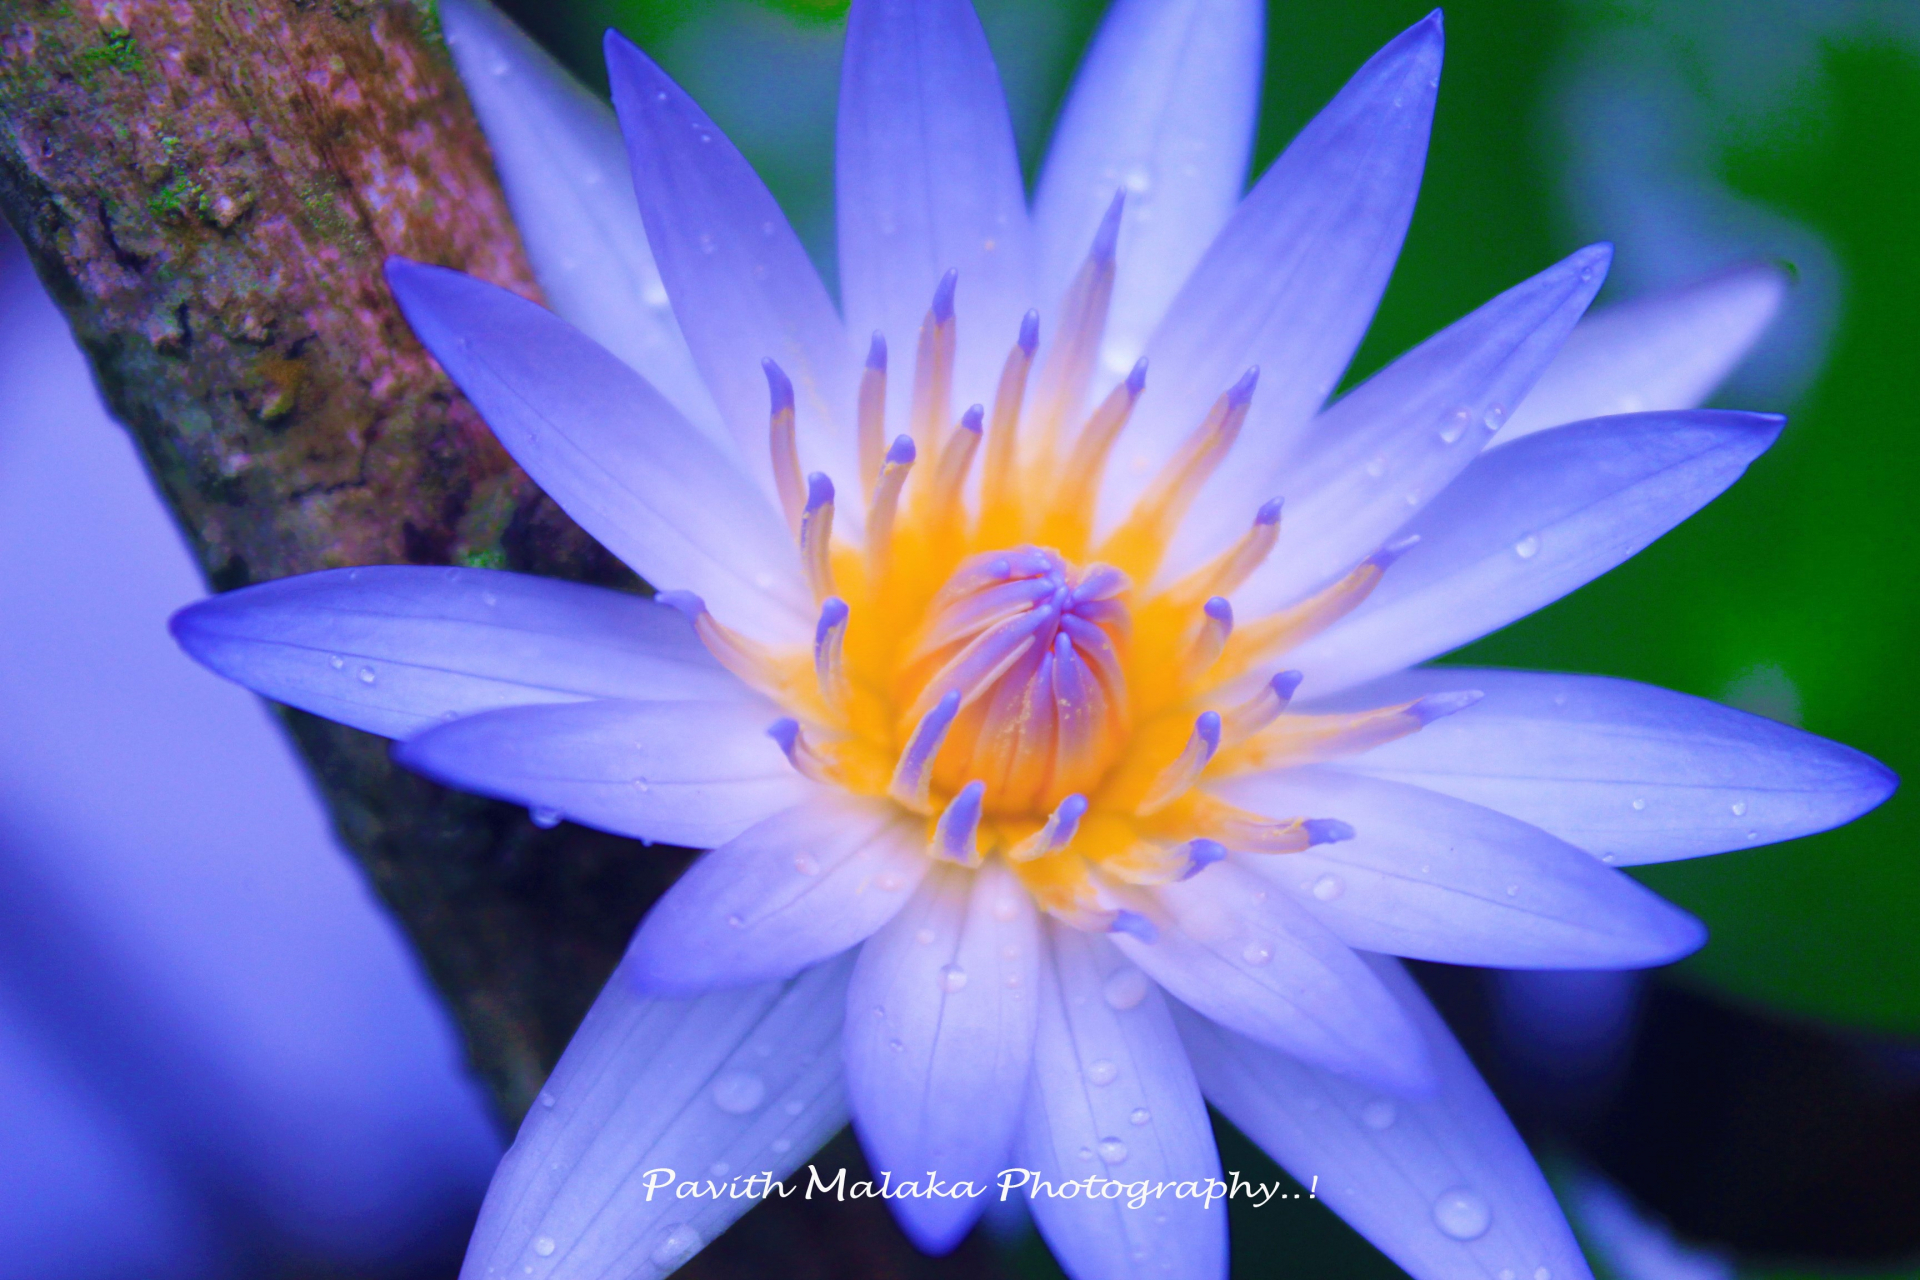 Pavithmalaka072680 Blue Lotus Flower Photos Picture